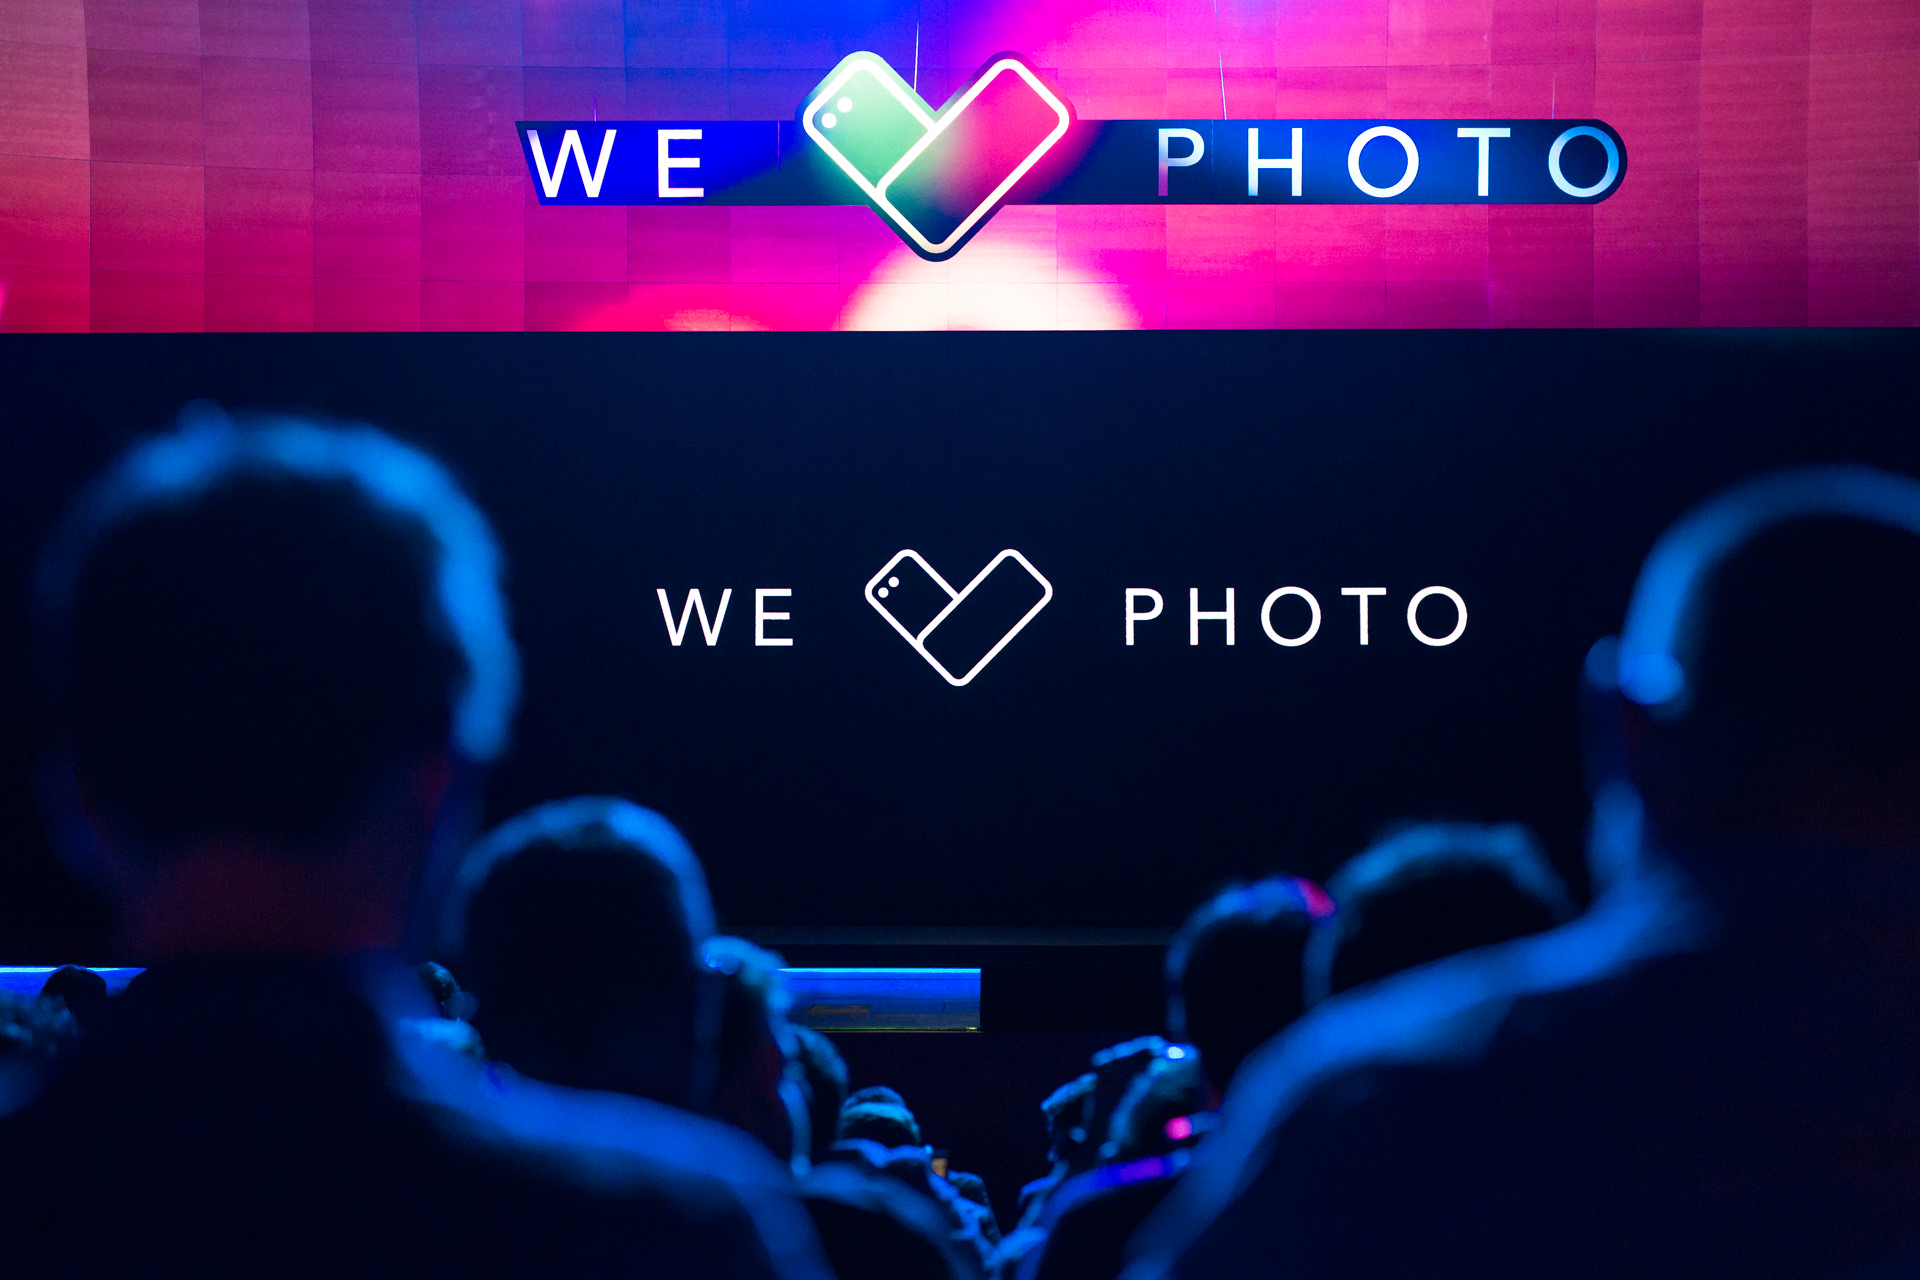 we-love-photo-lancio-europeo-smartphone-zenfone-4-gruppo-peroni-eventi-08